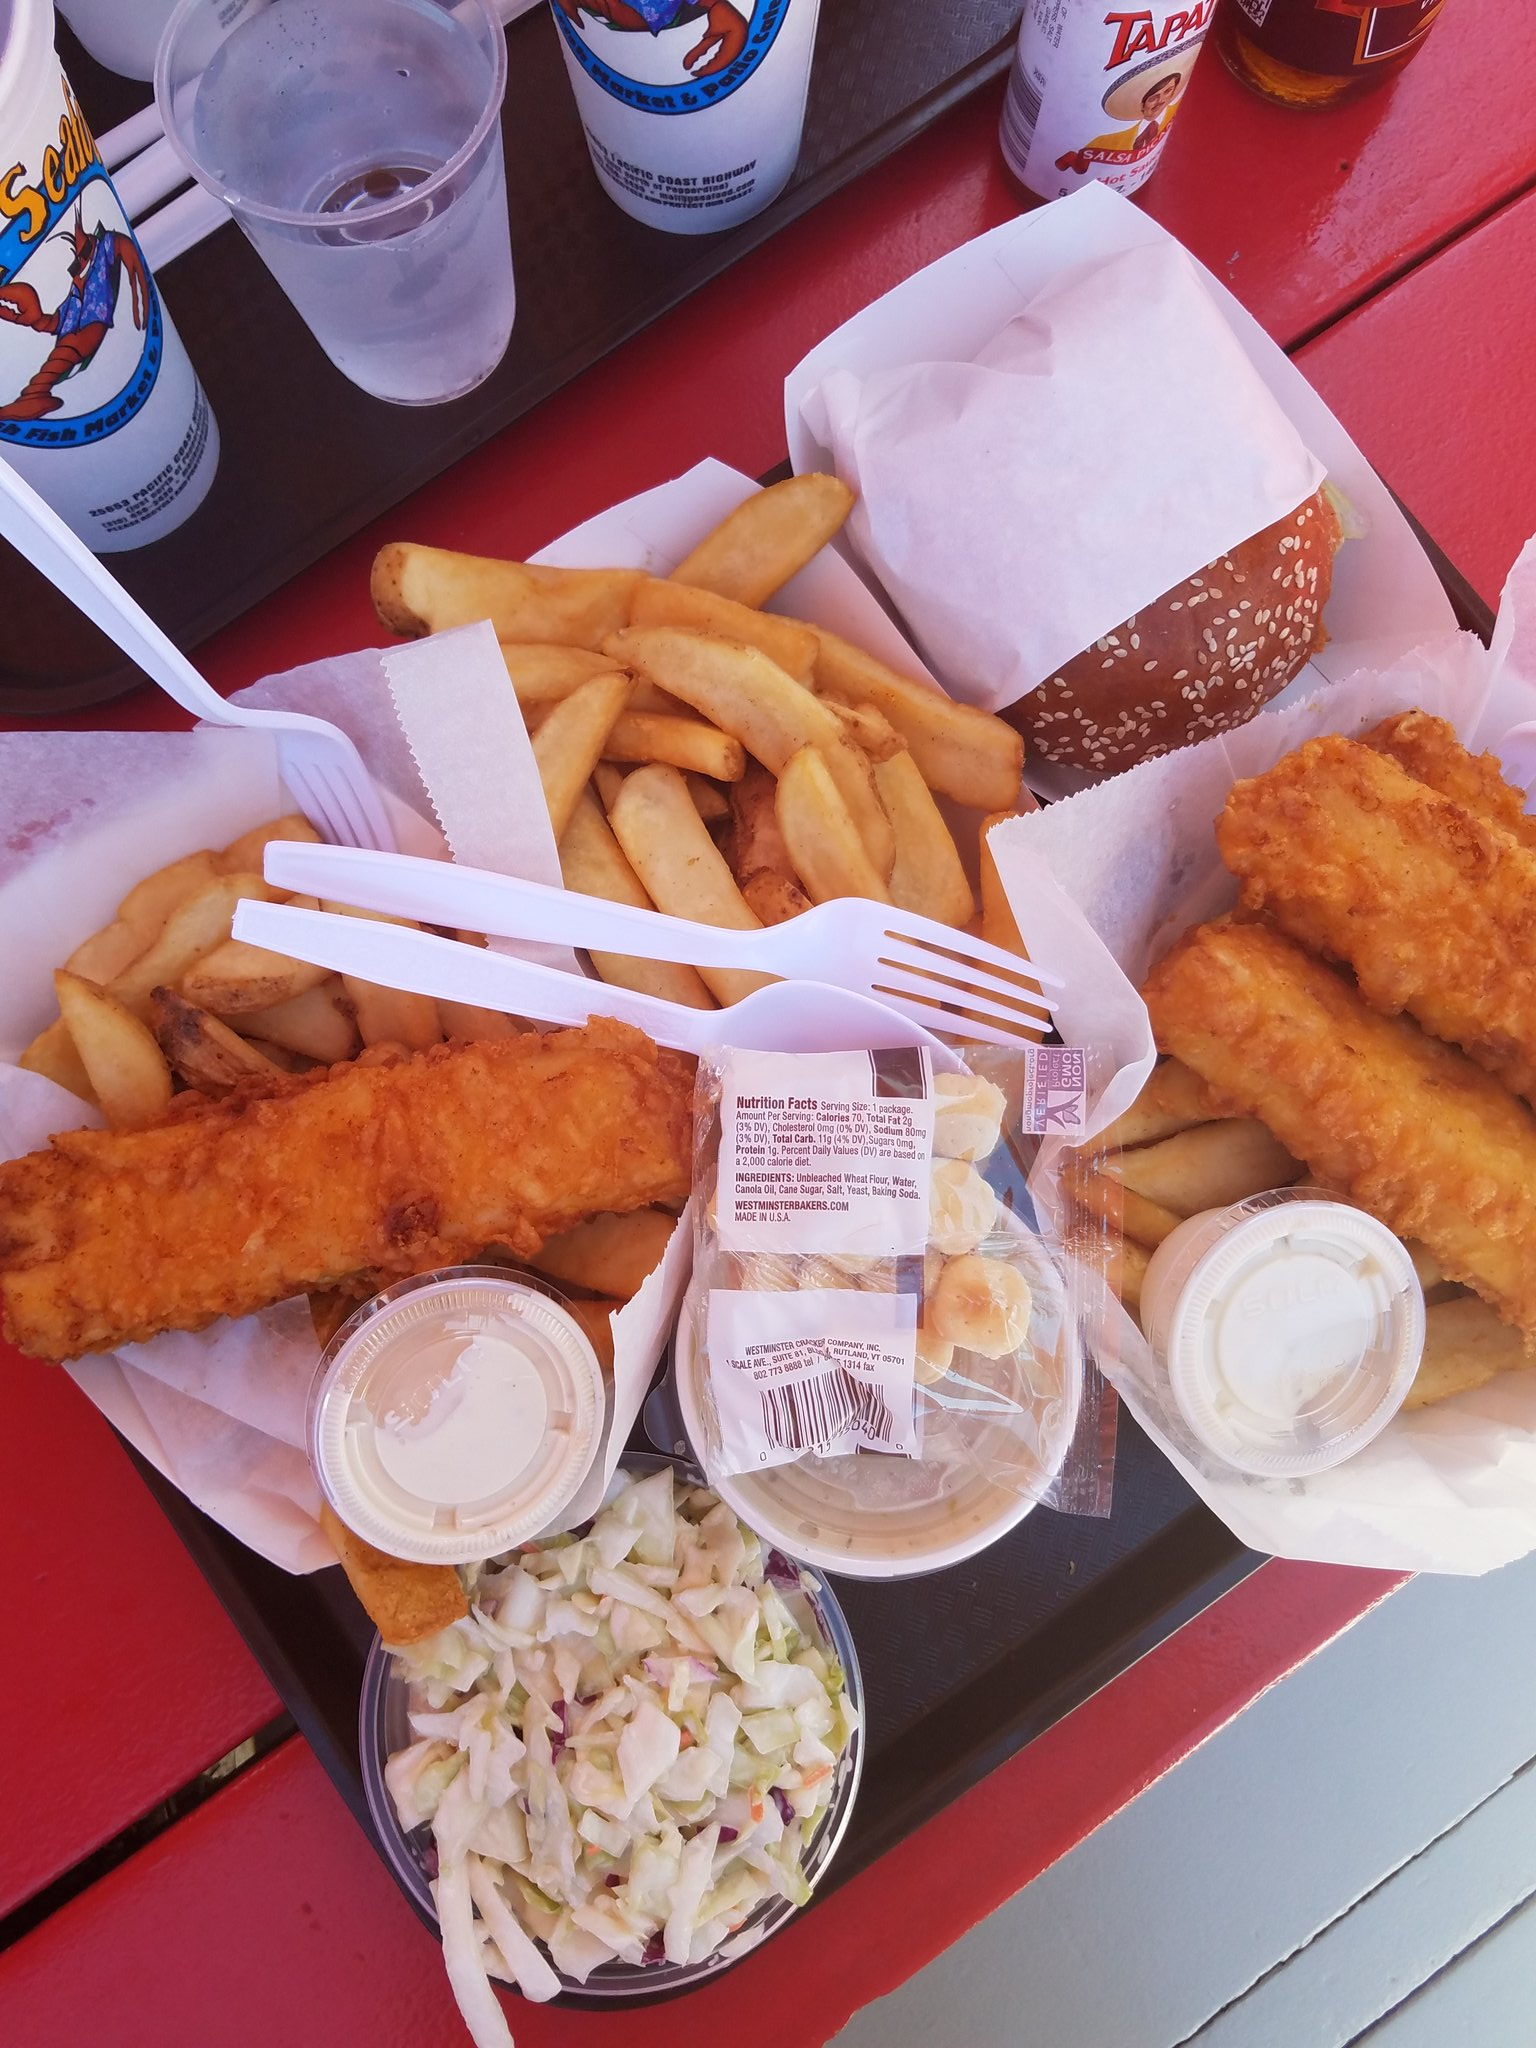 Our west coast team drove the Pacific Coast Highway and stopped at Malibu Seafood Fresh Fish Market for these goodies pre-#zagatbbqnation https://t.co/1bAisPP5Q2